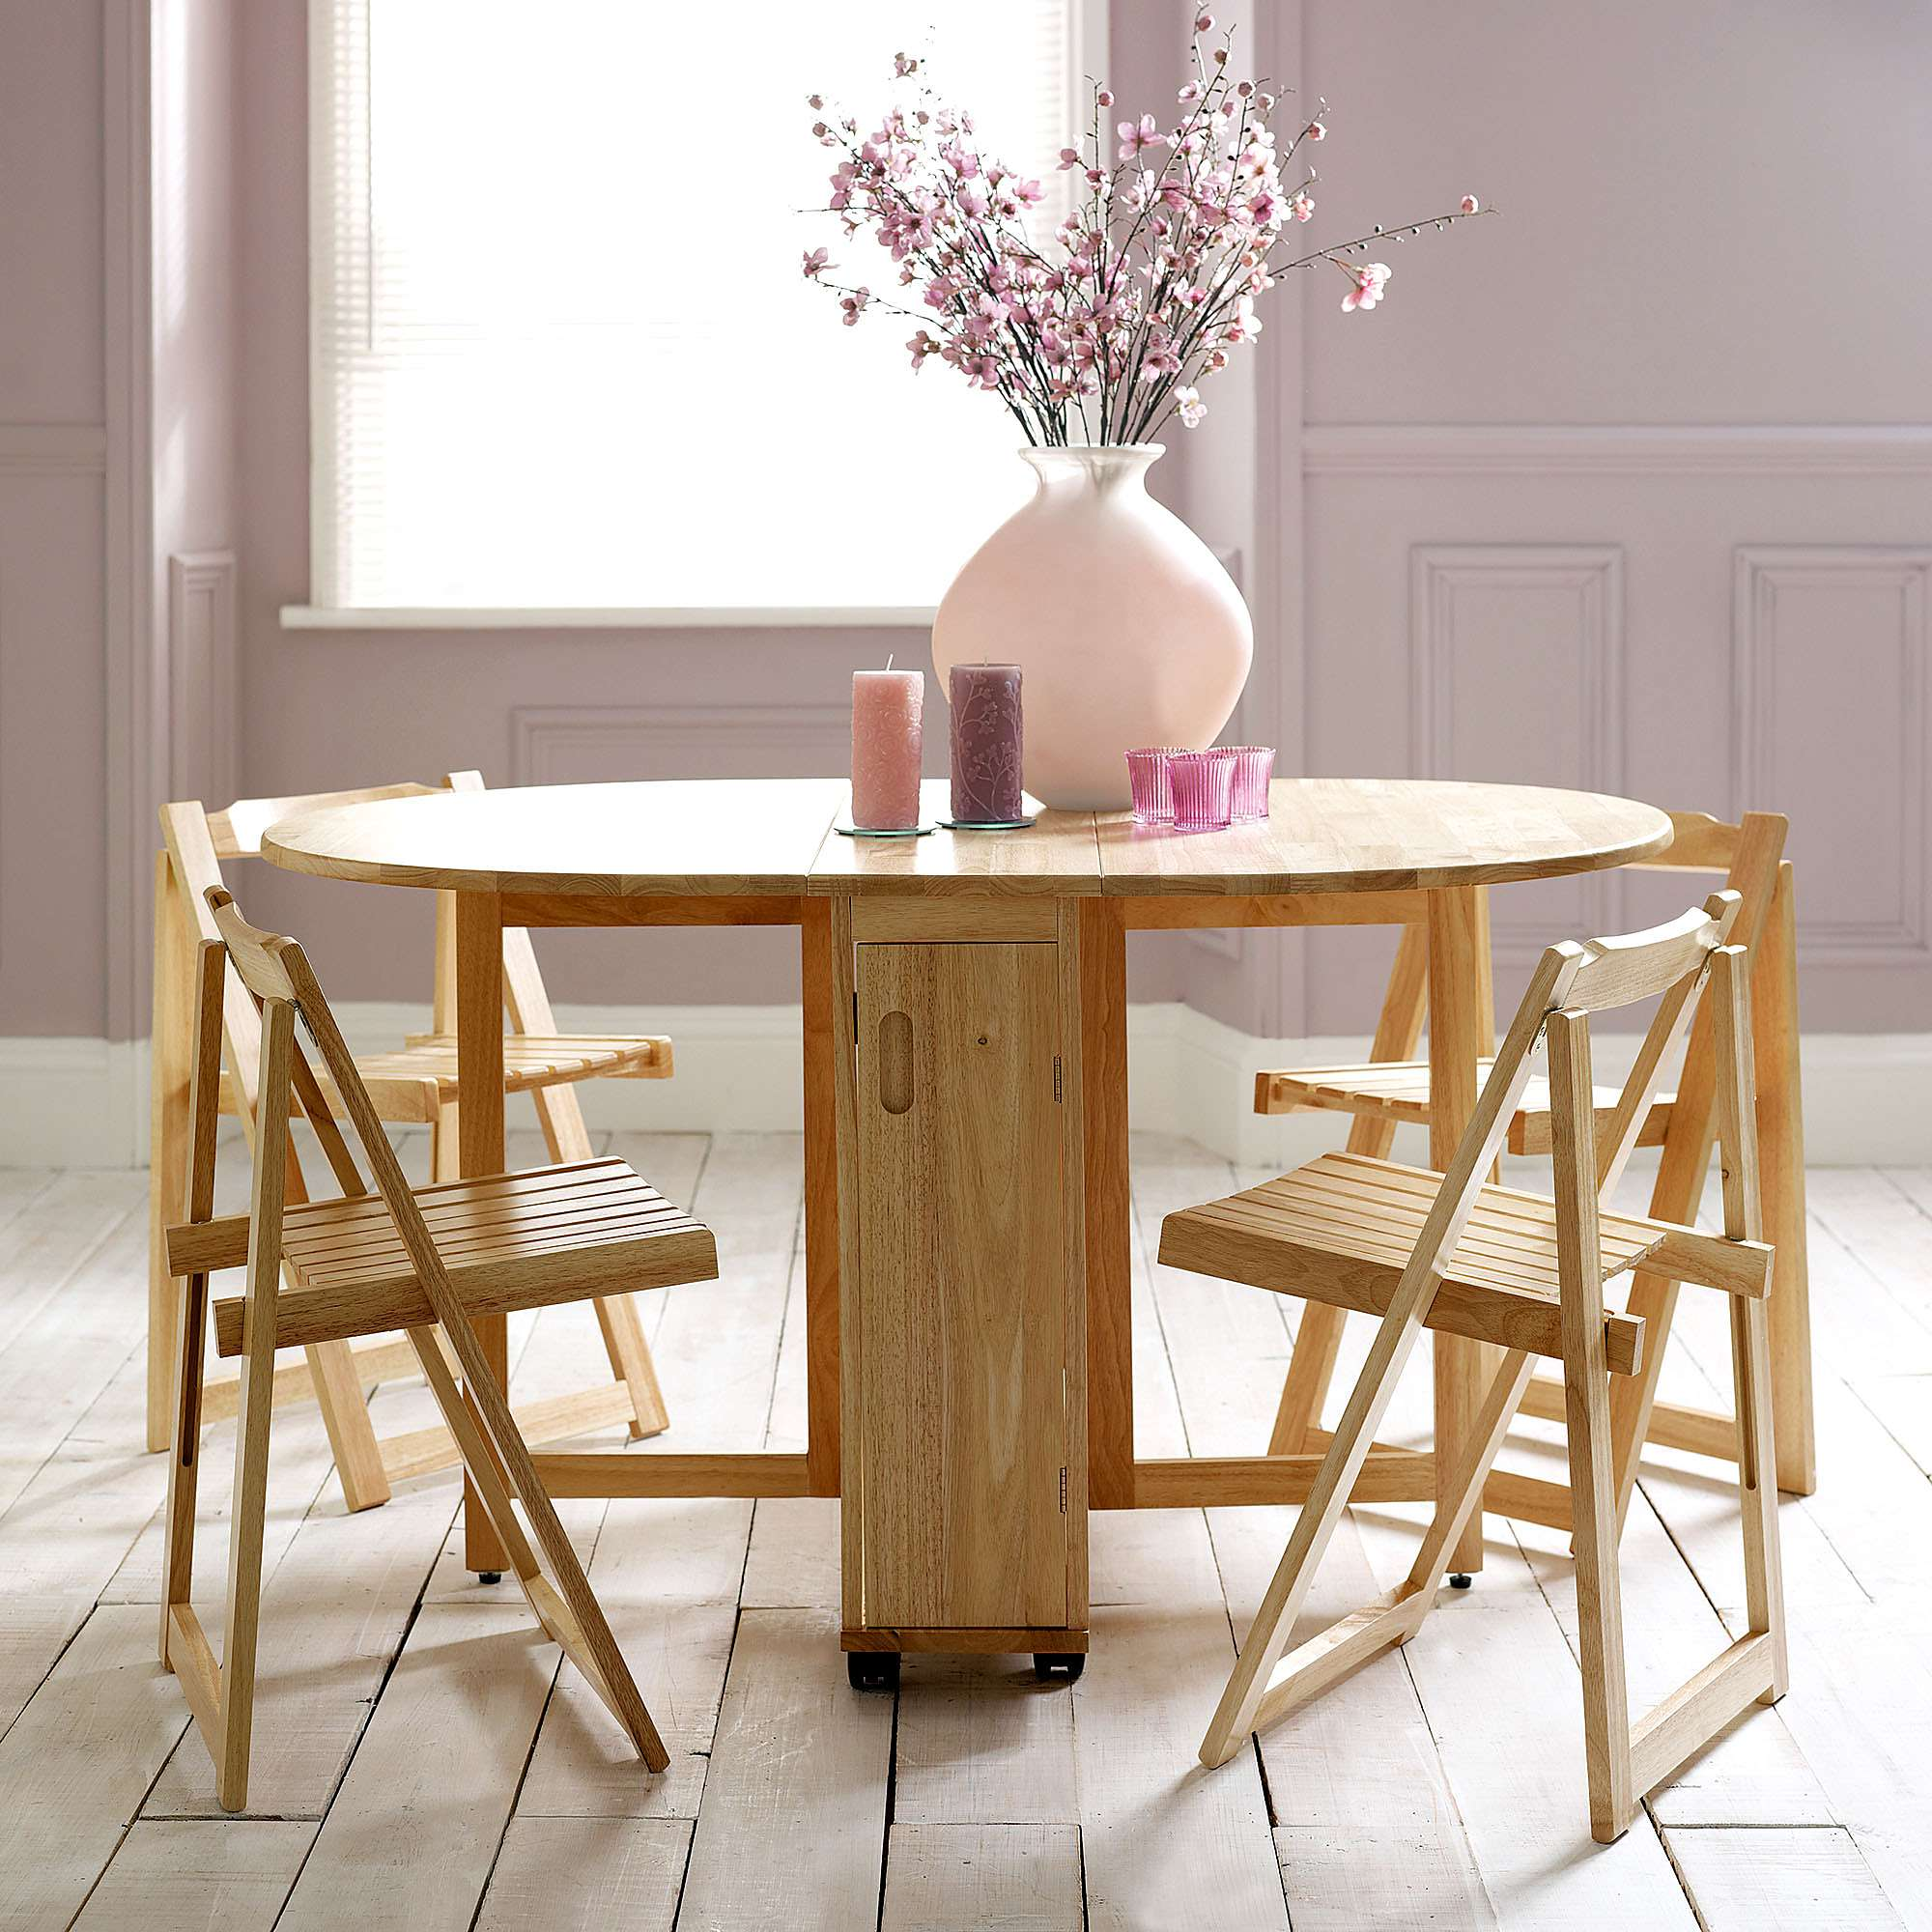 fold up dining room tables | Choose a Folding Dining Table for a Small Space – Adorable ...